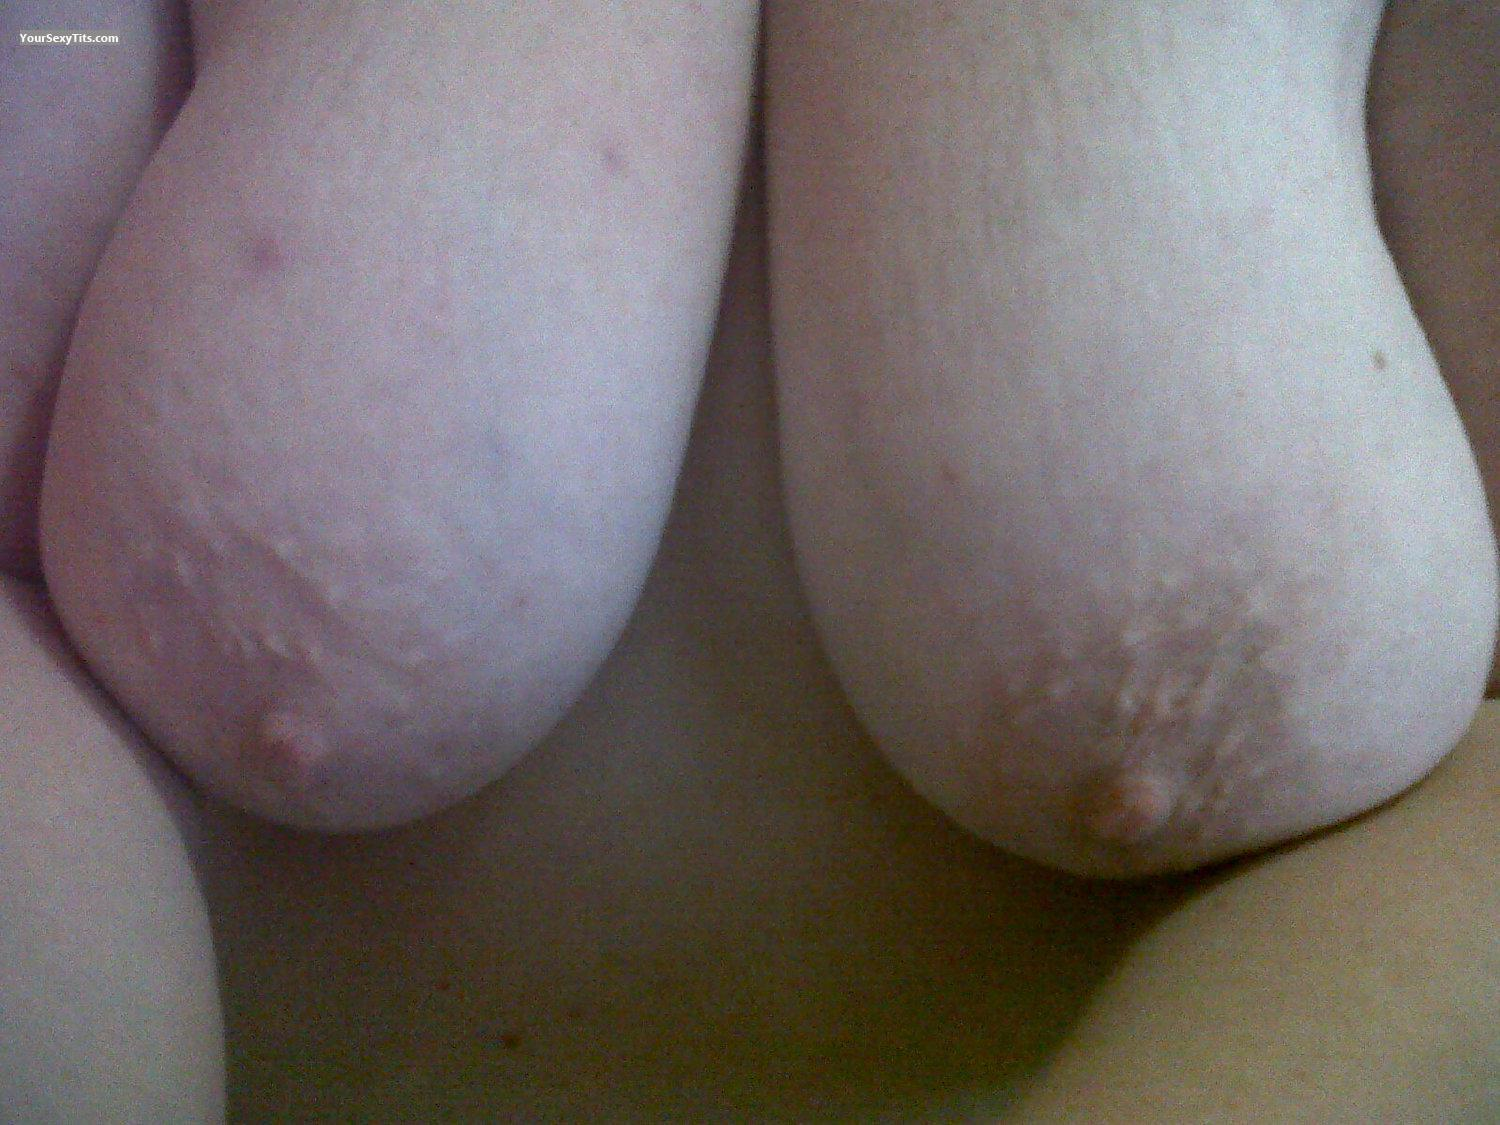 Big Tits Of My Wife Selfie by SweetJ